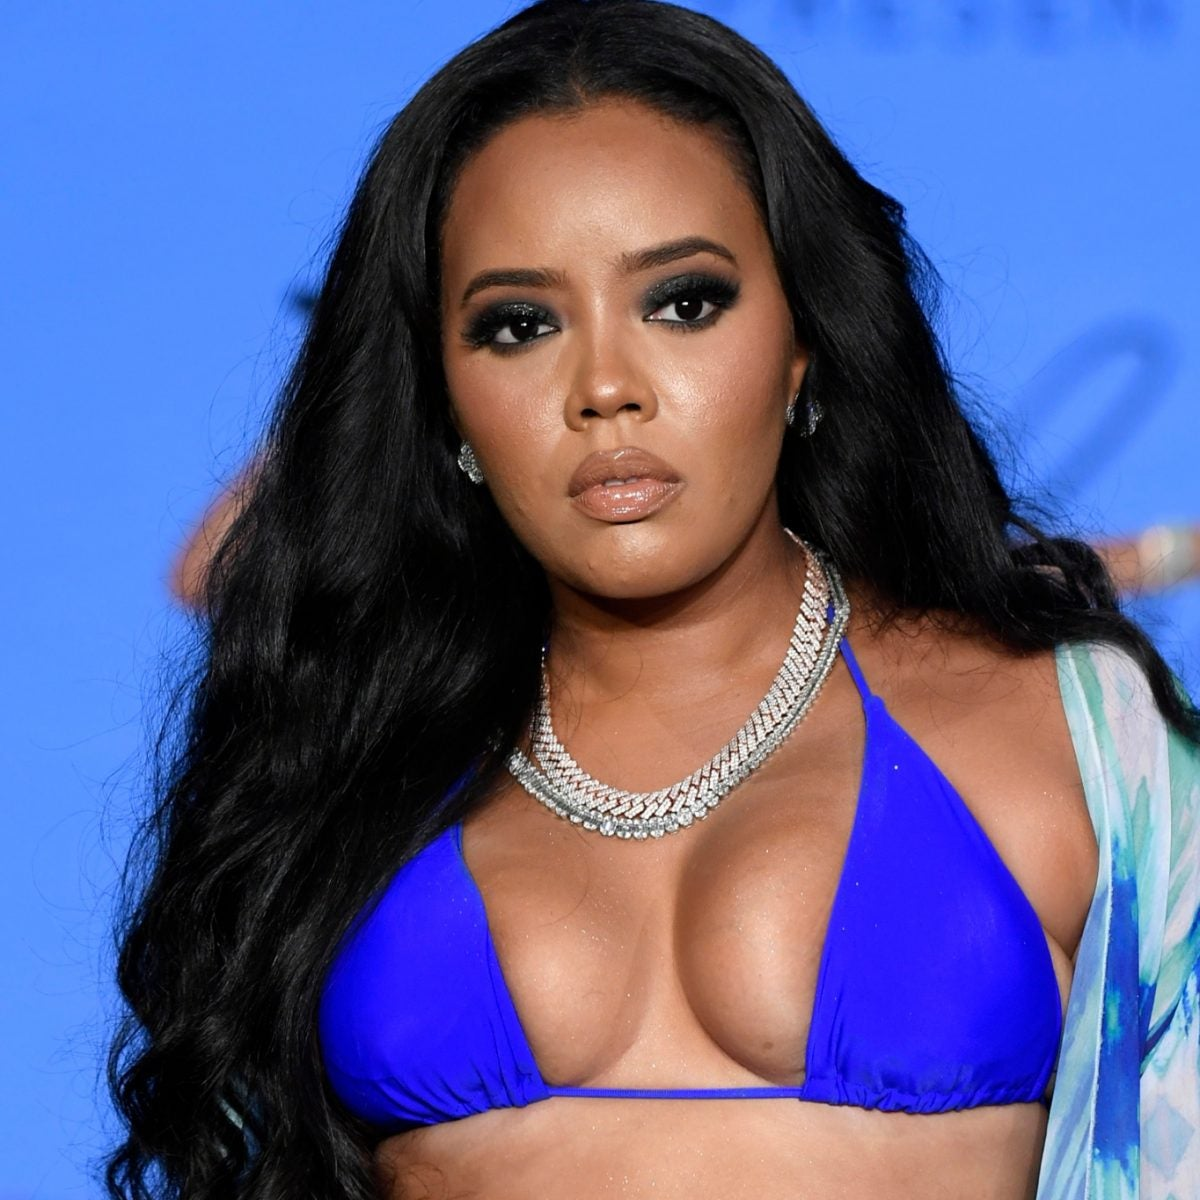 Angela Simmons And 9 Other Famous Women Who Shared Unfiltered Photos Of Their Bodies